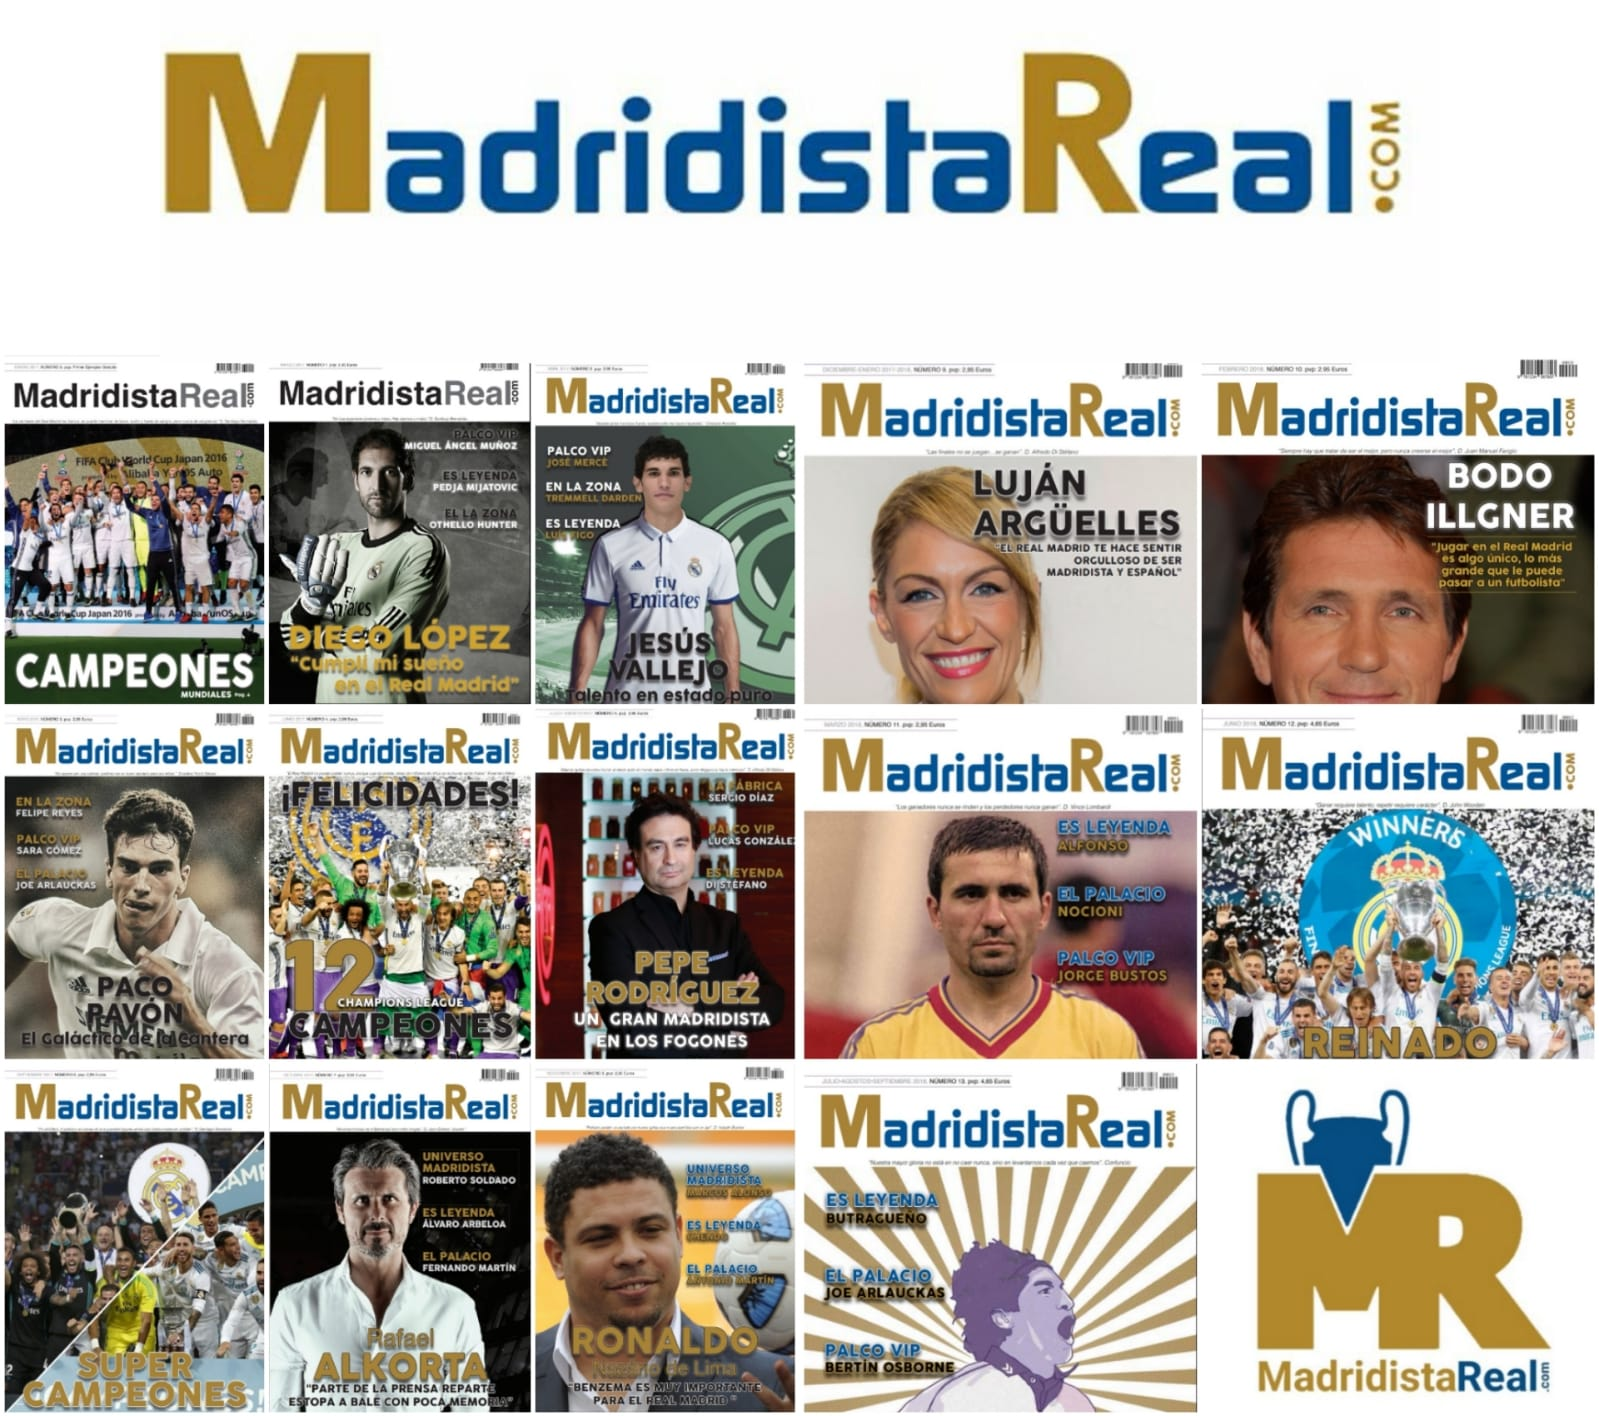 Revista Madridista Real en formato digital